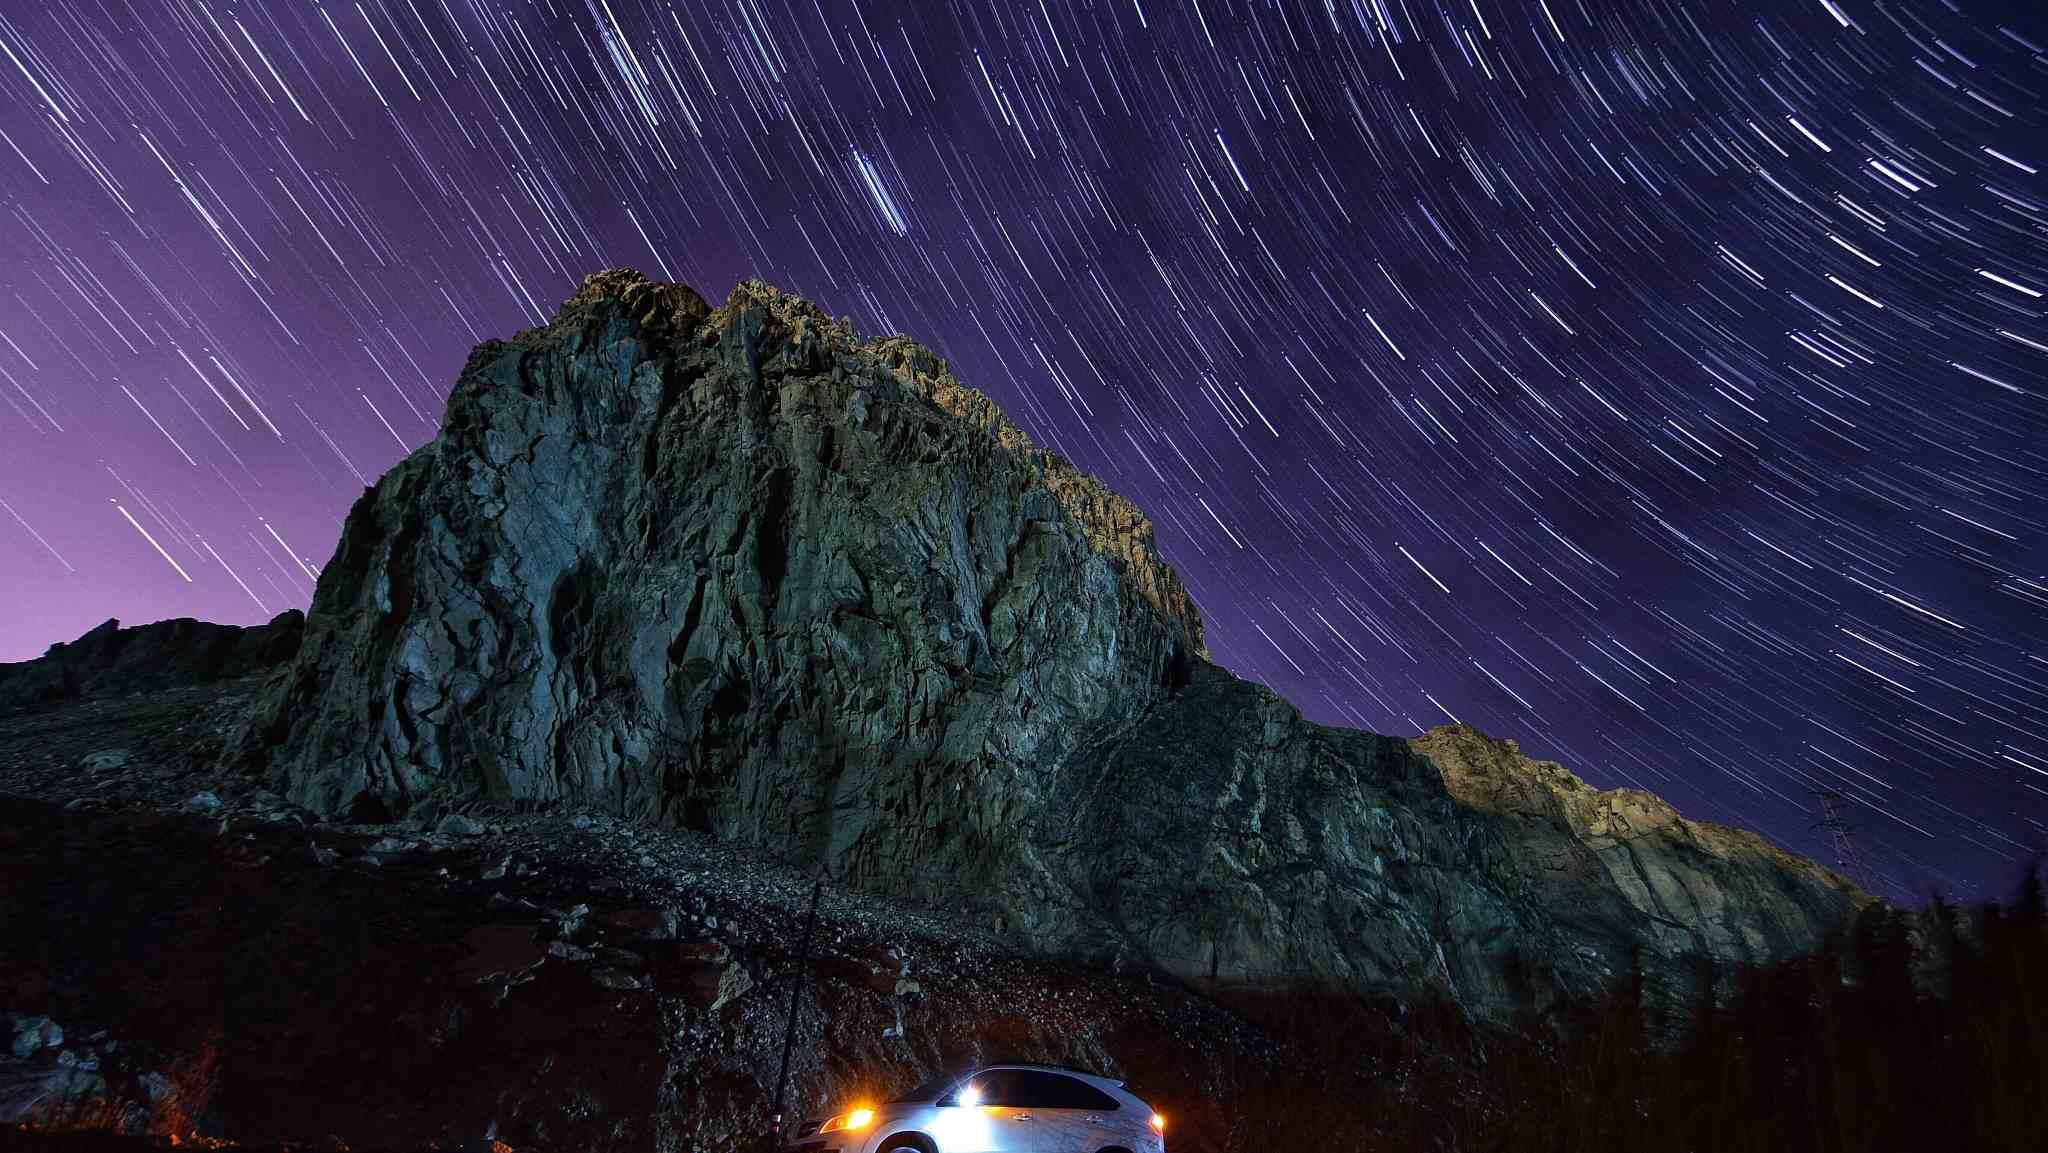 Leonid meteor shower lights up the sky in NW China